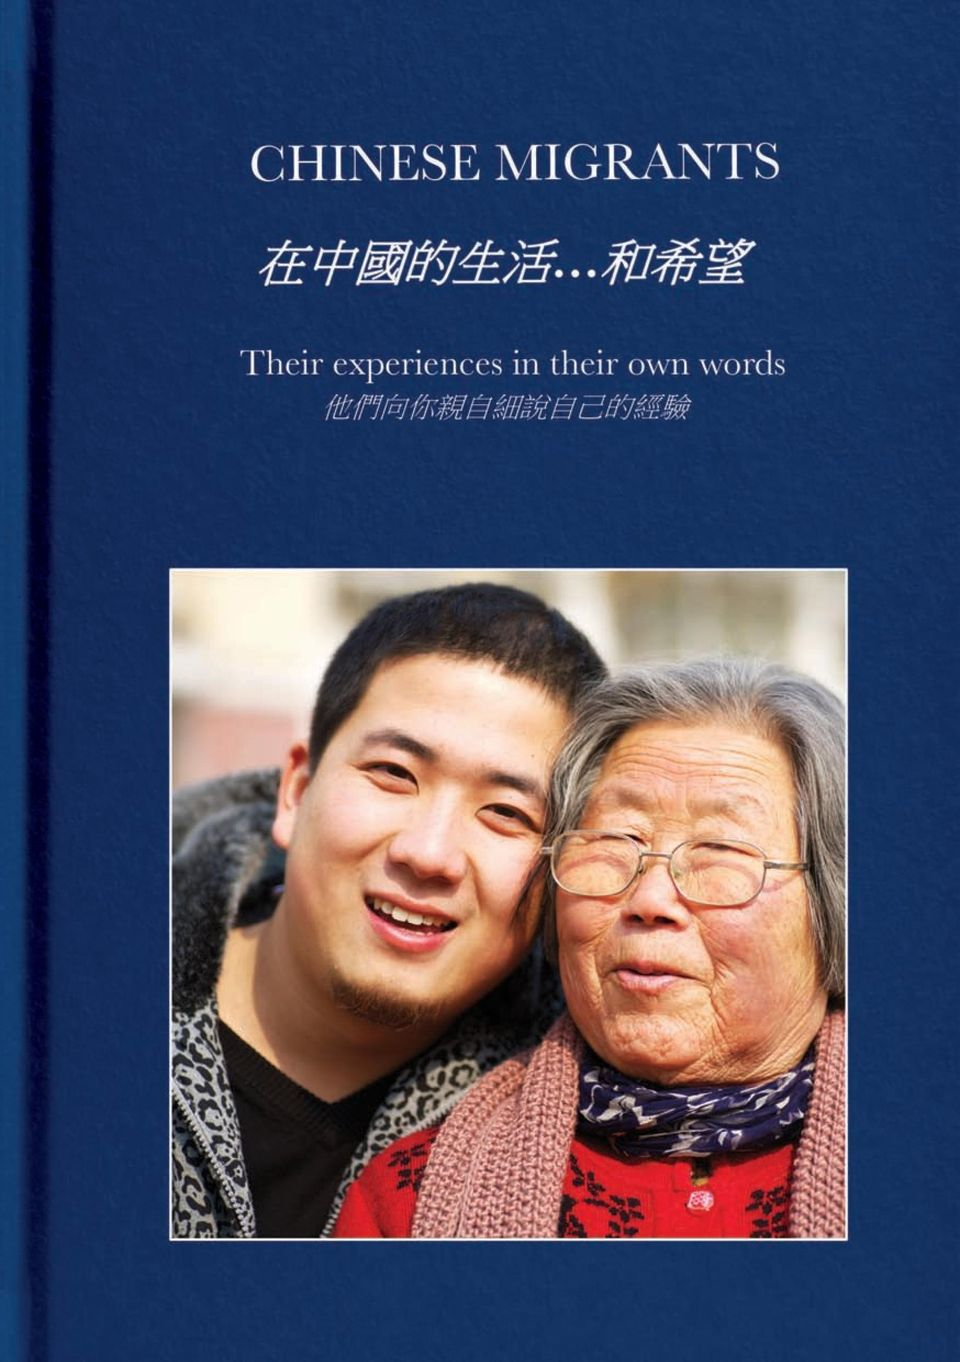 Lawthorn and Carolyn Kagan Wai Yin Chinese women